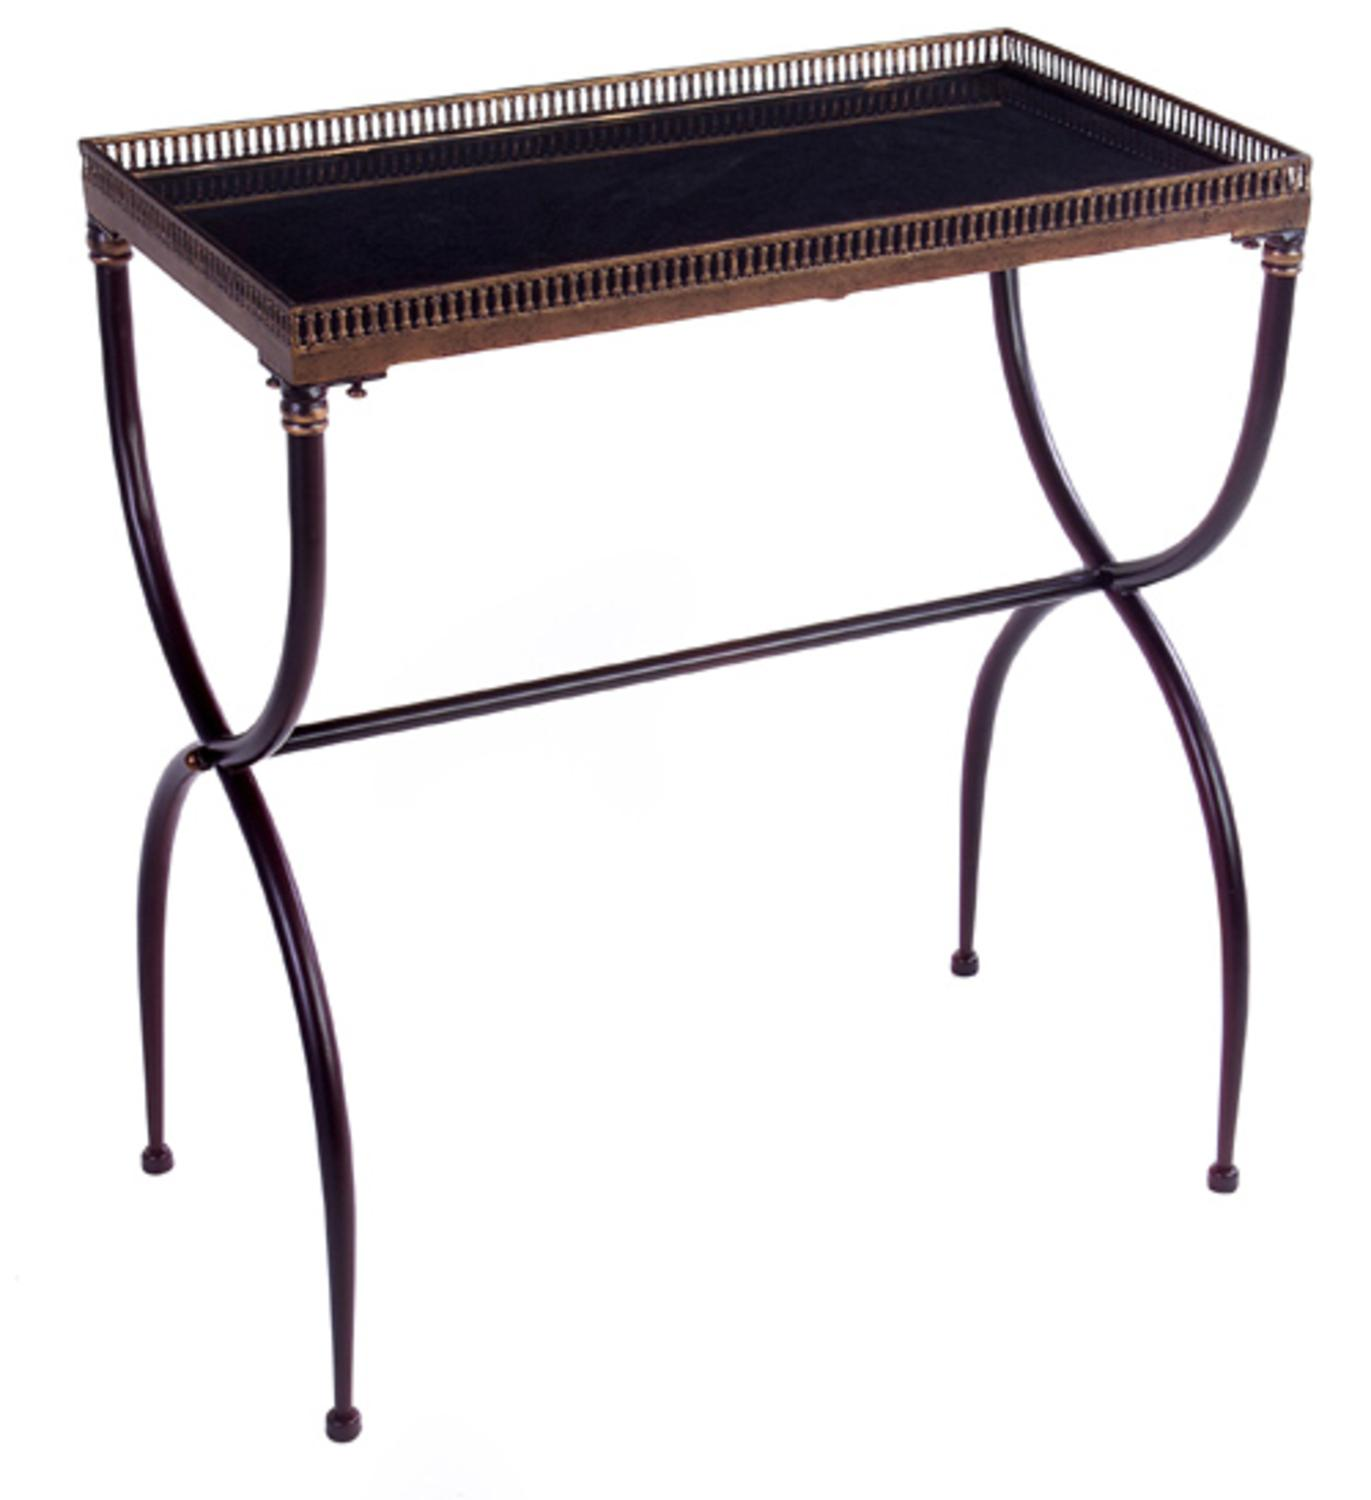 "28"" Rectangular Black Table with X-Shaped Legs and Tray-Like Top"